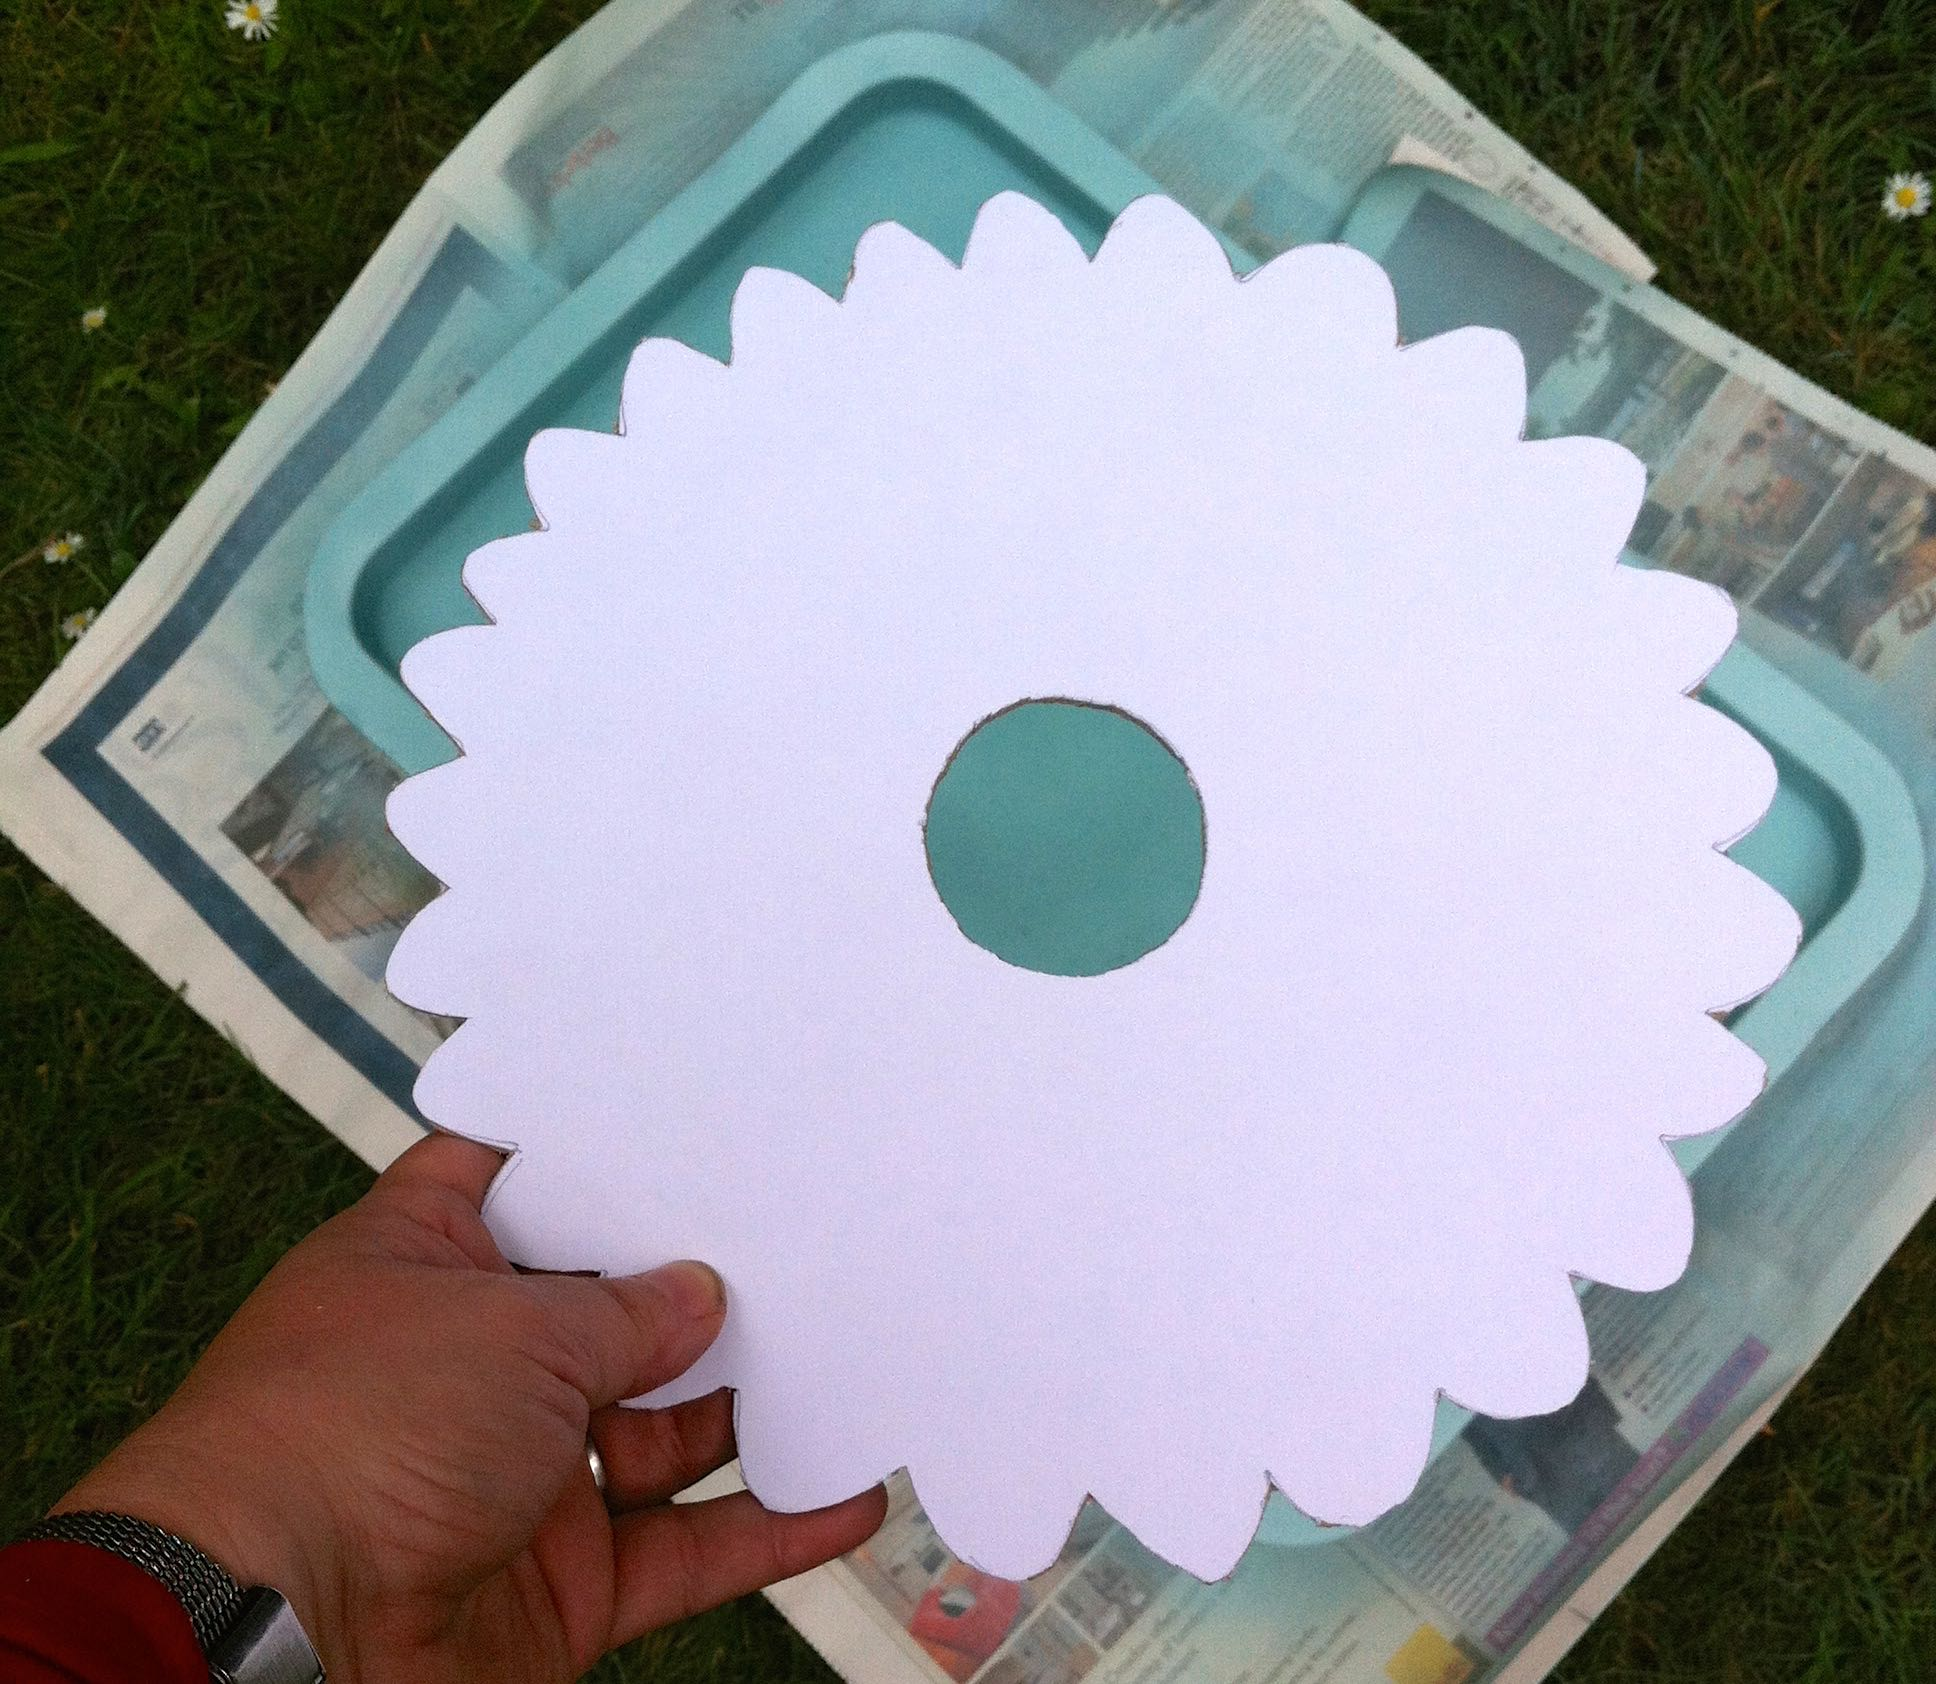 A completed flower shaped template